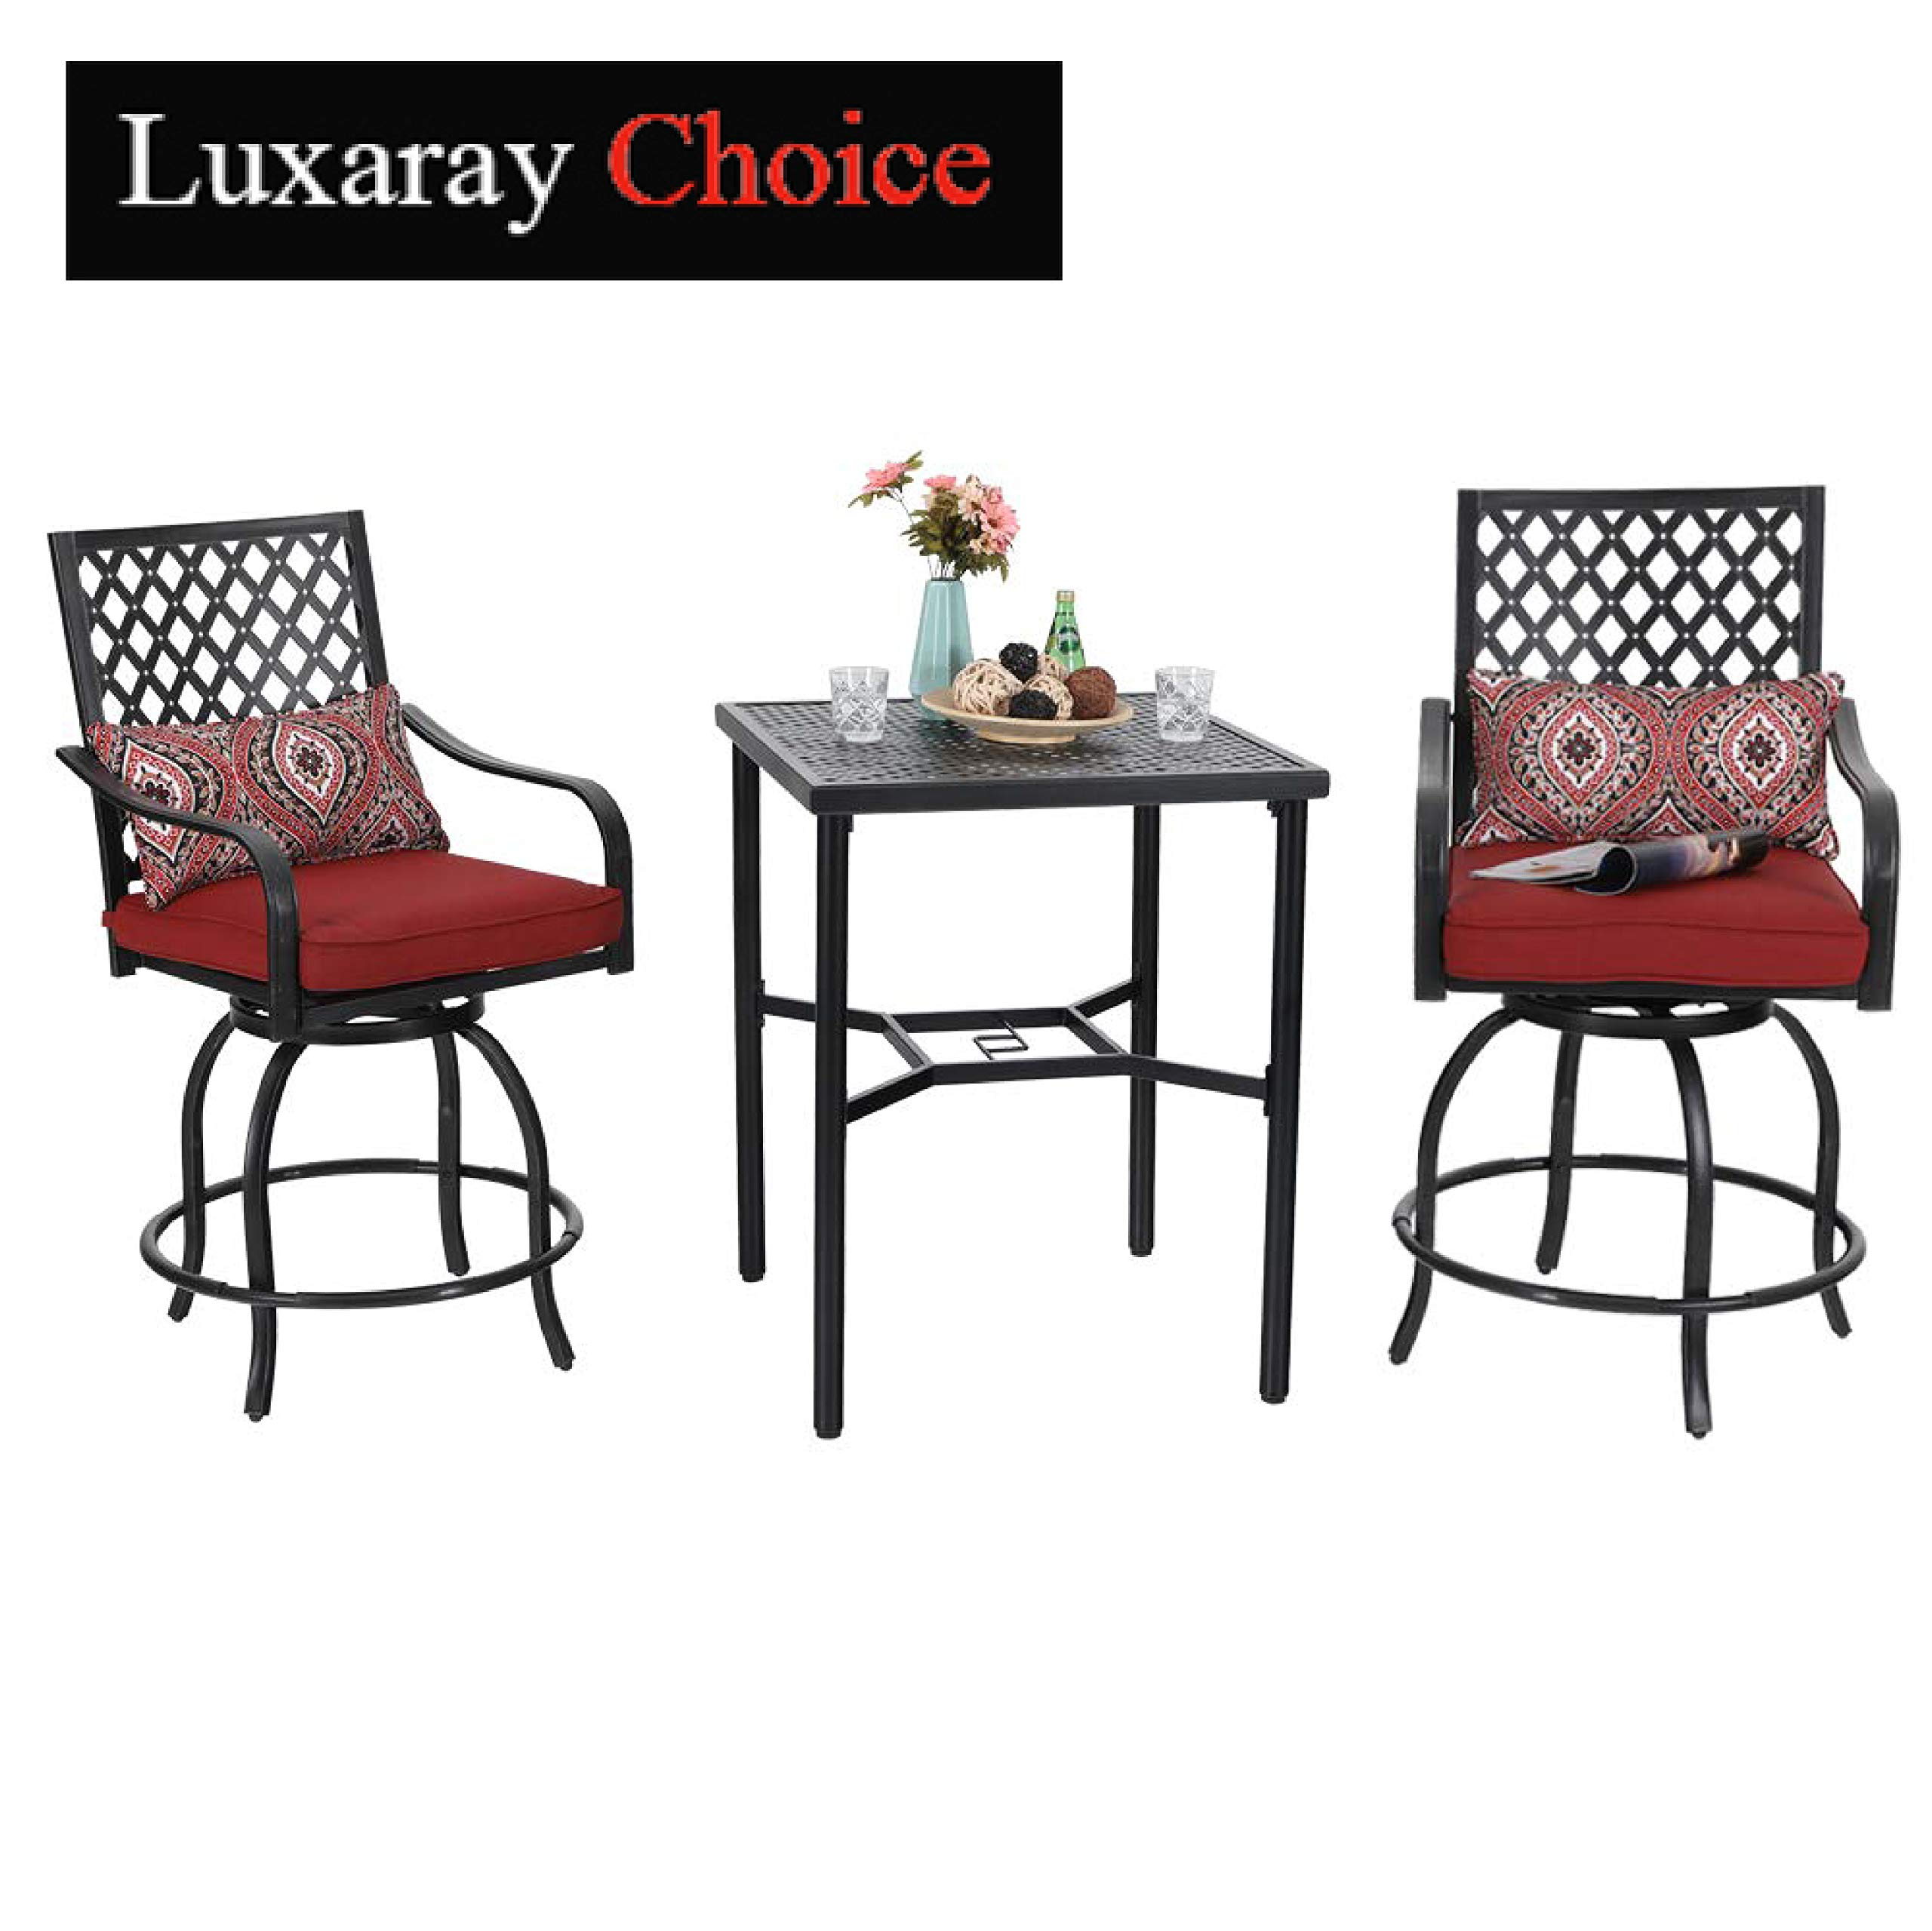 PHI VILLA Bistro Set Outdoor Bar Height Swivel 2 Patio Chairs and 1 Metal Top Table,Seat Cushions and Adjust Screw Feet